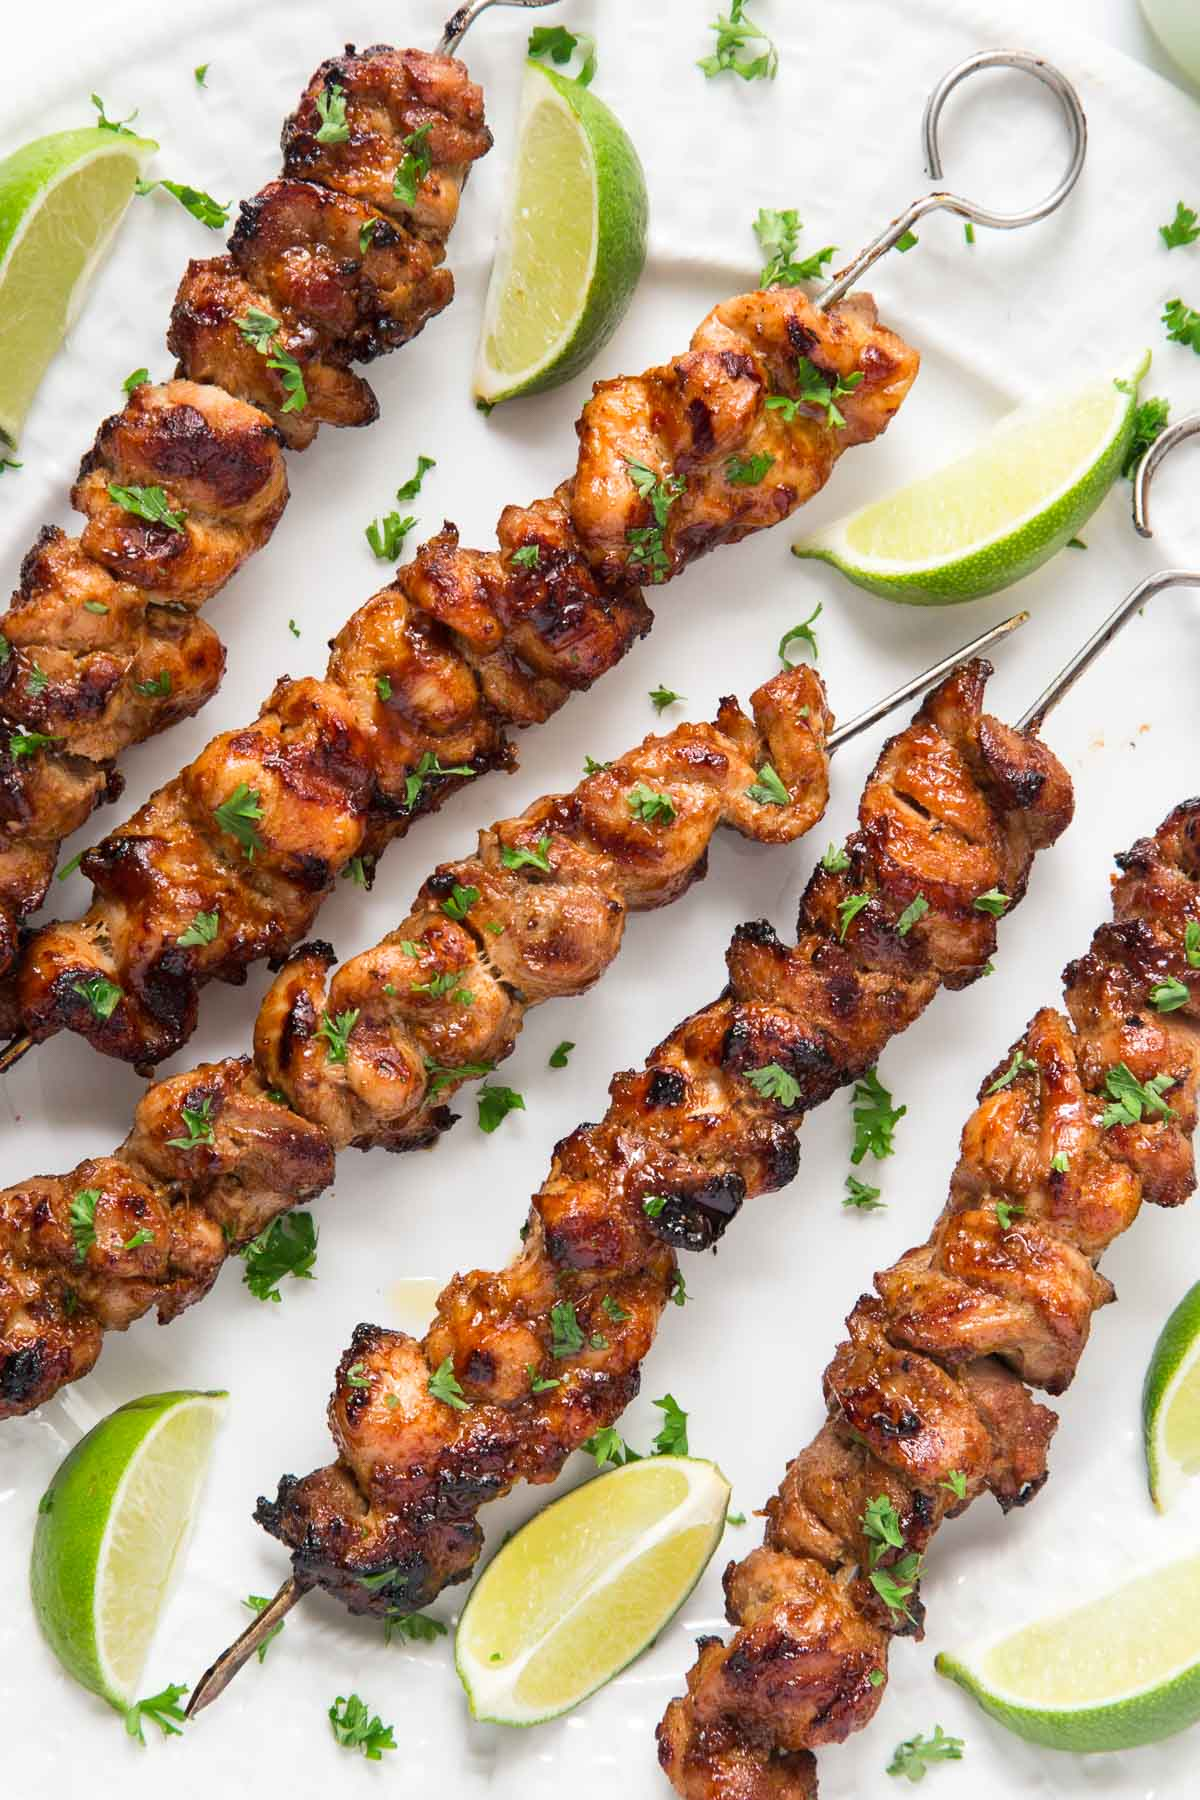 Overhead photo of Peruvian Grilled Chicken Skewers on a white serving platter garnished with cilantro and lime wedges.